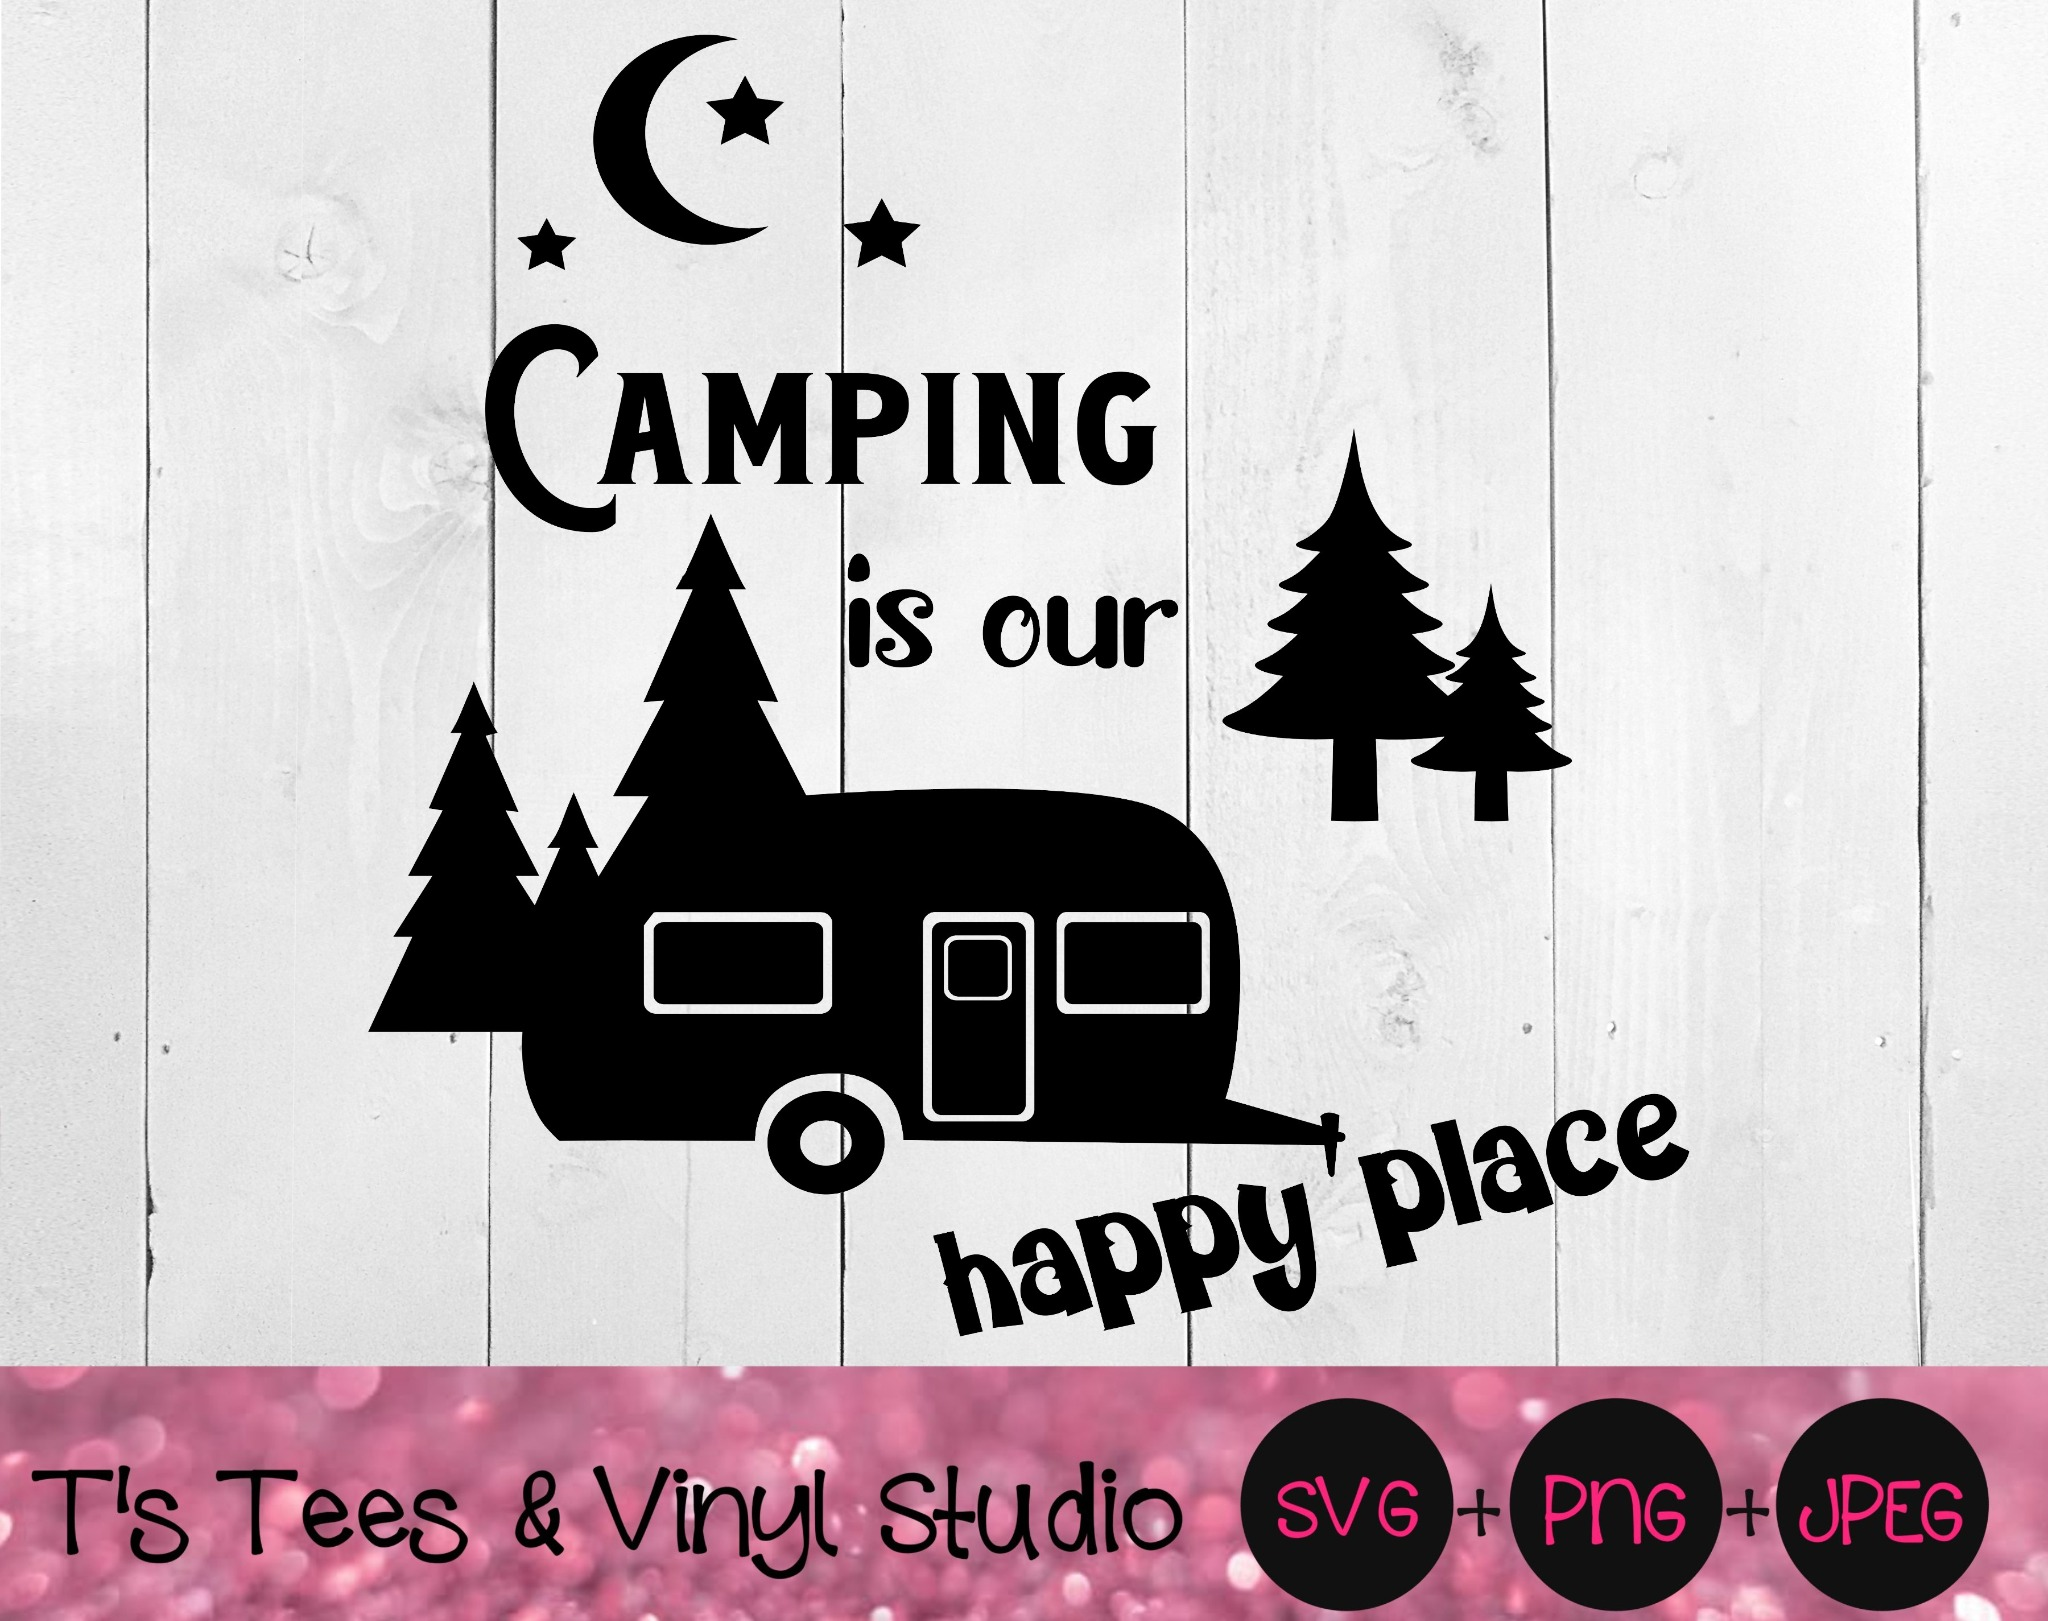 Camping Svg, Camper Png, RV, Our Happy Place, Bucket Light Cut File, Love Camping, Summer, Outdoors,